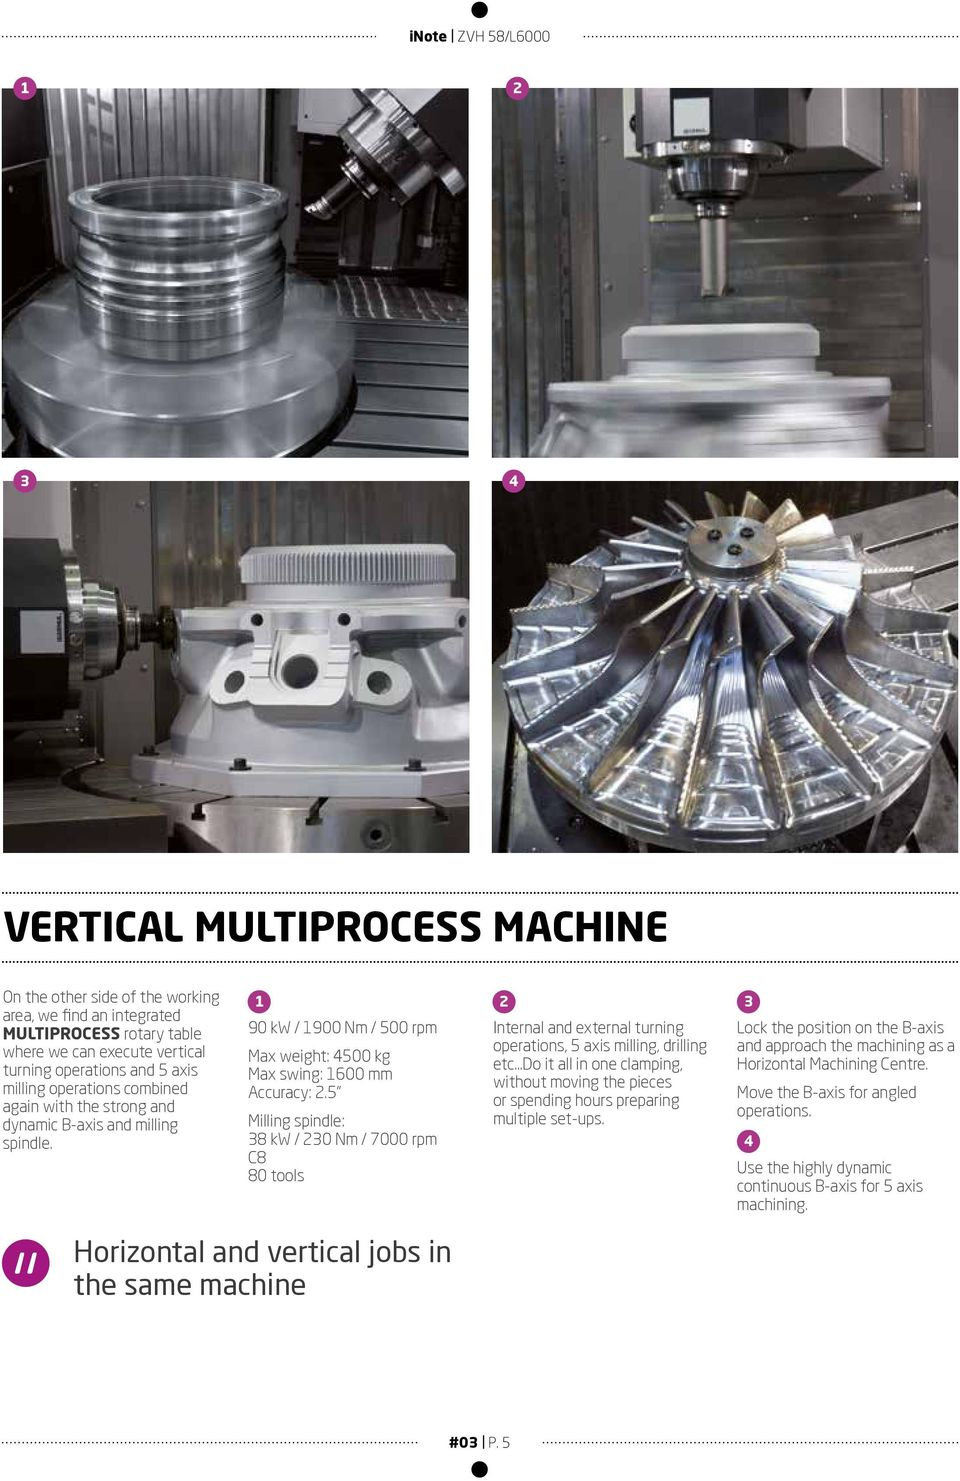 5 Milling spindle: 8 kw / 0 Nm / 7000 rpm C8 80 tools Internal and external turning operations, 5 axis milling, drilling etc Do it all in one clamping, without moving the pieces or spending hours